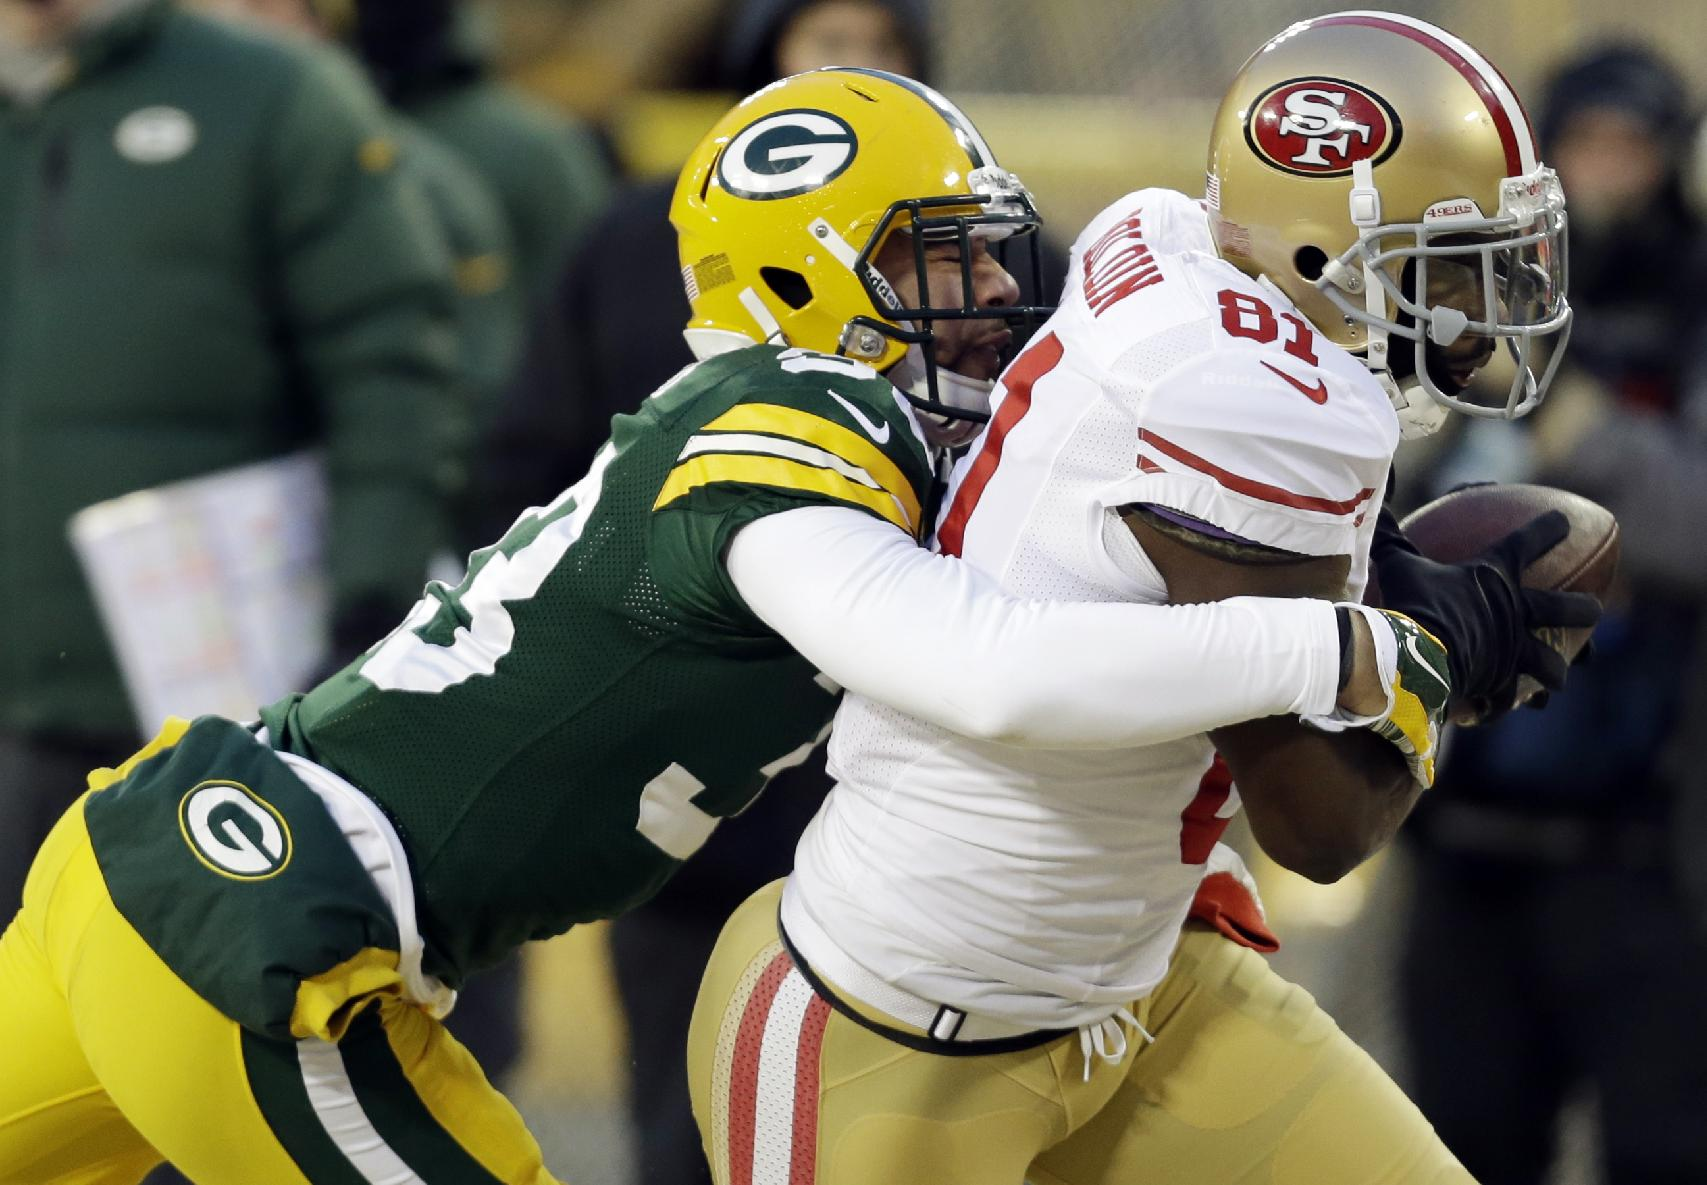 Green Bay Packers cornerback Micah Hyde (33) tackles after San Francisco 49ers wide receiver Anquan Boldin (81) makes a reception during the first half of an NFL wild-card playoff football game, Sunday, Jan. 5, 2014, in Green Bay, Wis